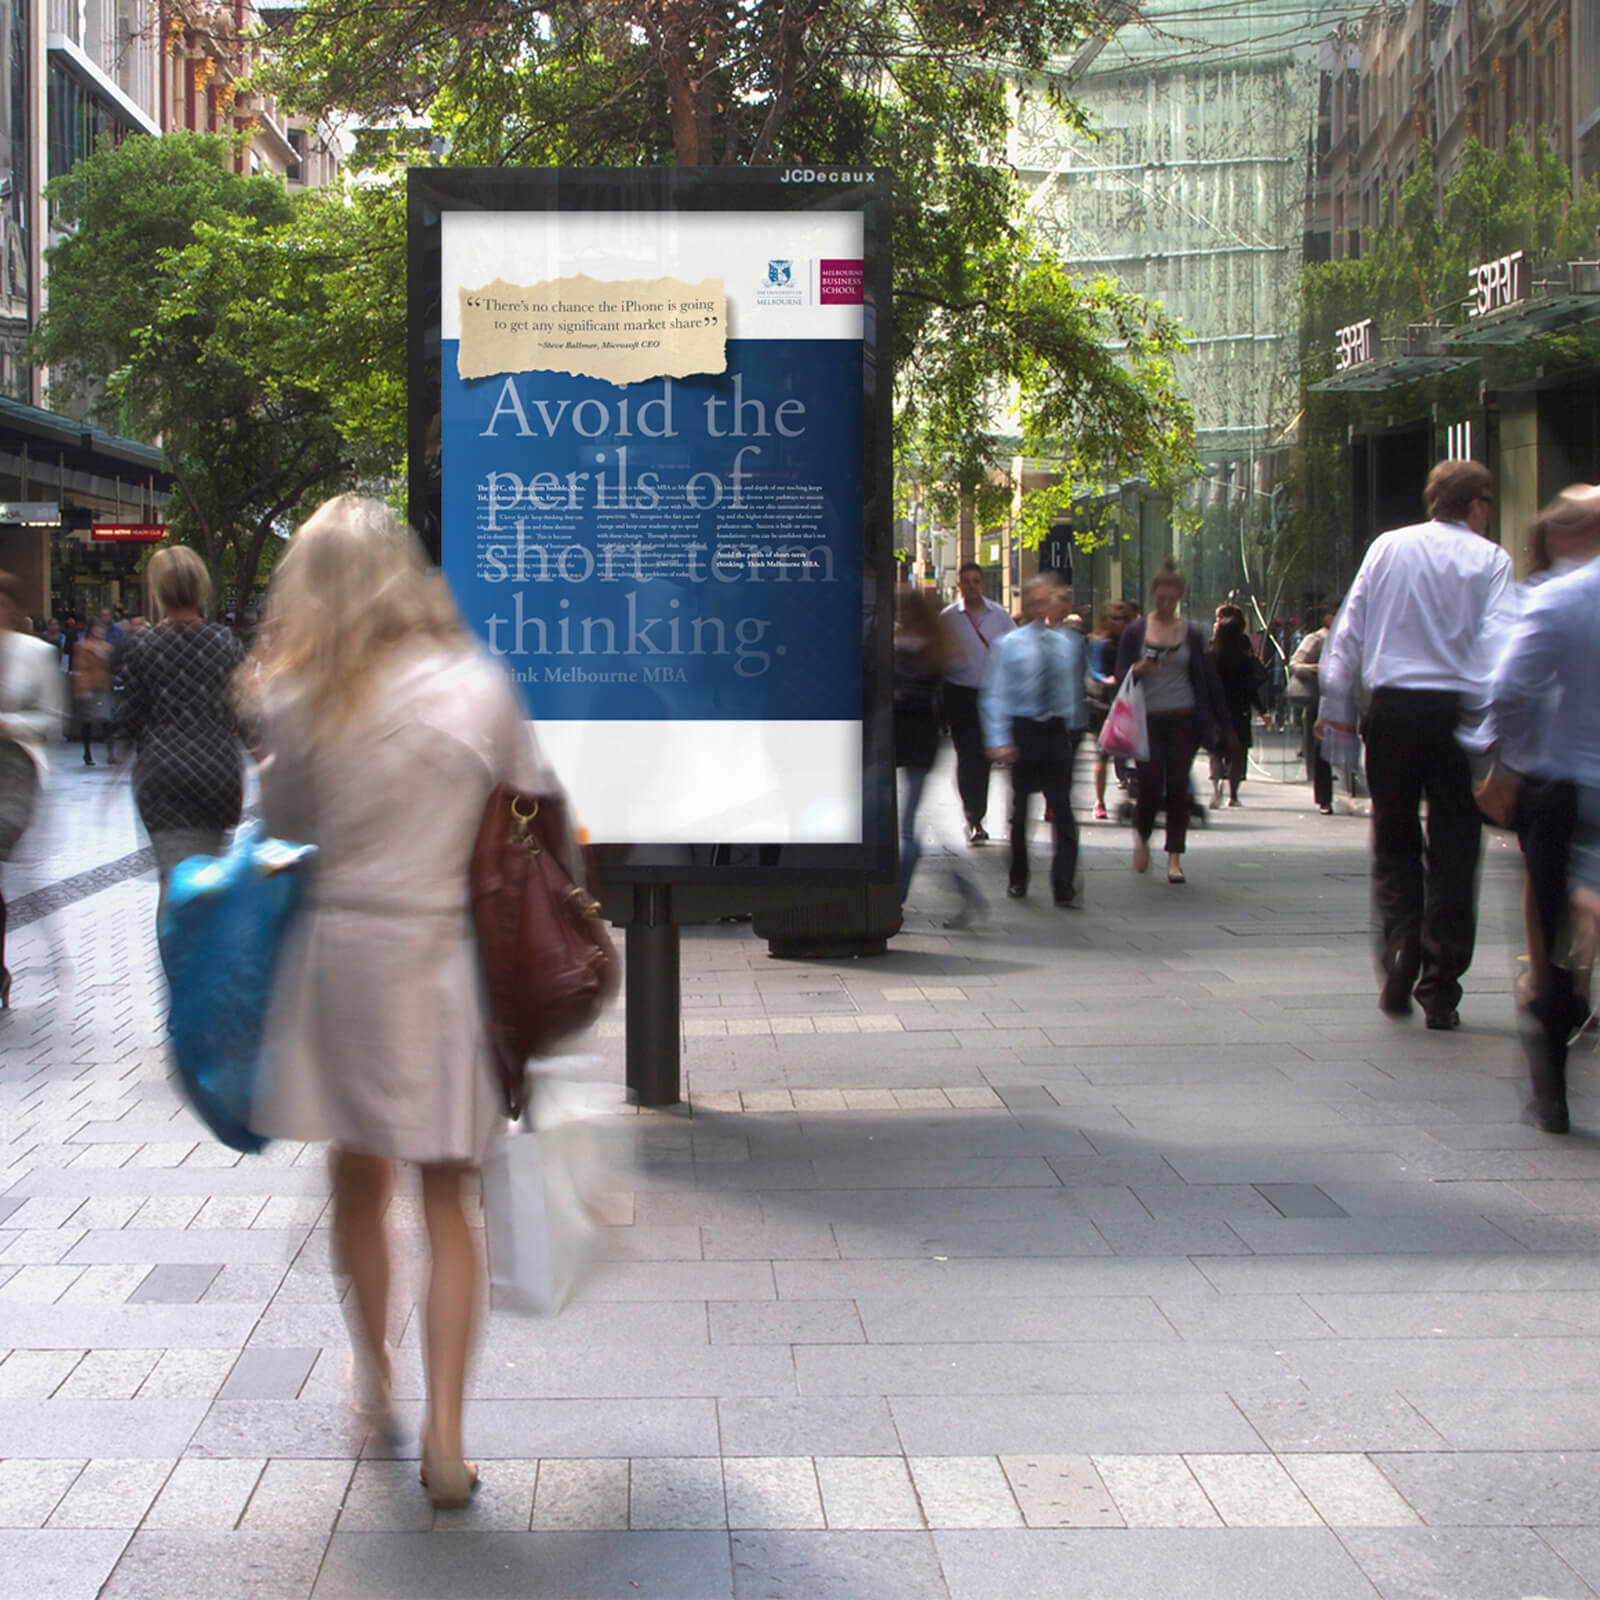 Melbourne University: MBA - is a print & outdoor campaign that promotes the value of deeper, slower and more considered thought. This is especially powerful in a world convinced that faster, reactive business strategy is key. I was the only creative to work on the project. So I did the concept development, writing, and the art direction.